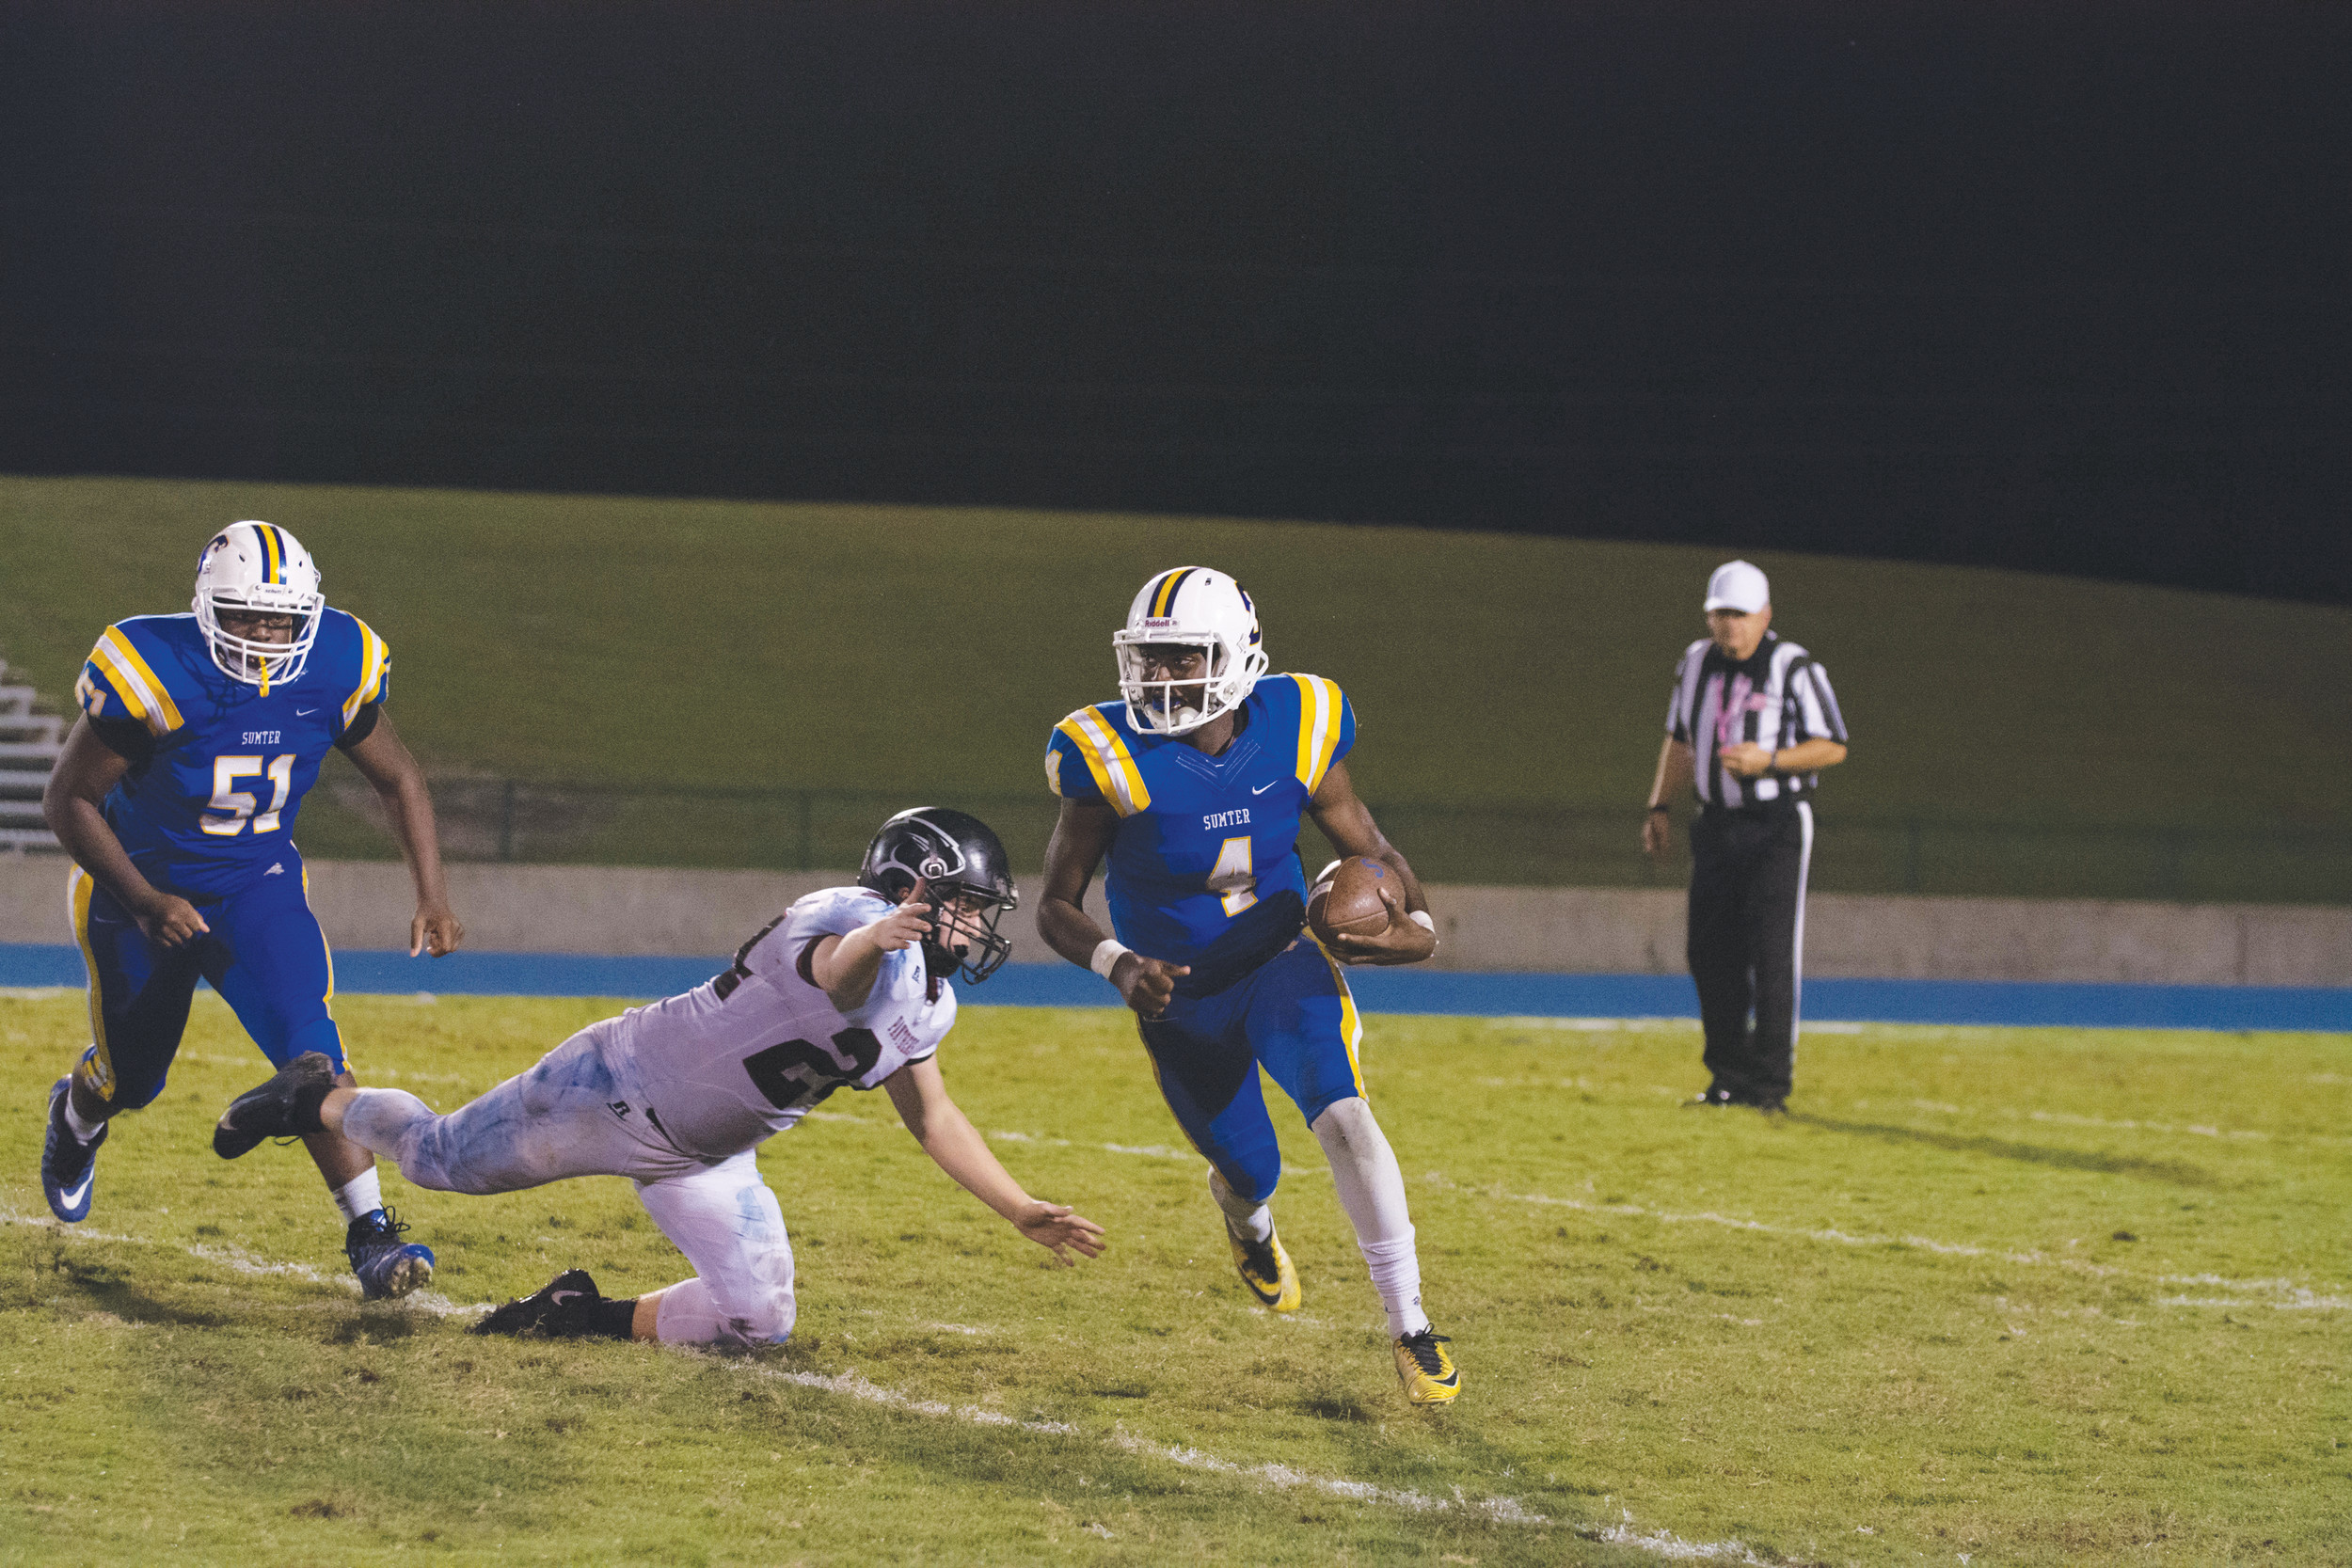 Sumter High quarterback Zykiem Jackson looks for running room during last week's homecoming victory over Carolina Forest. Sumter faces Conway today at 7:30 p.m. at Memorial Stadium with the Region VI-5A title on the line.